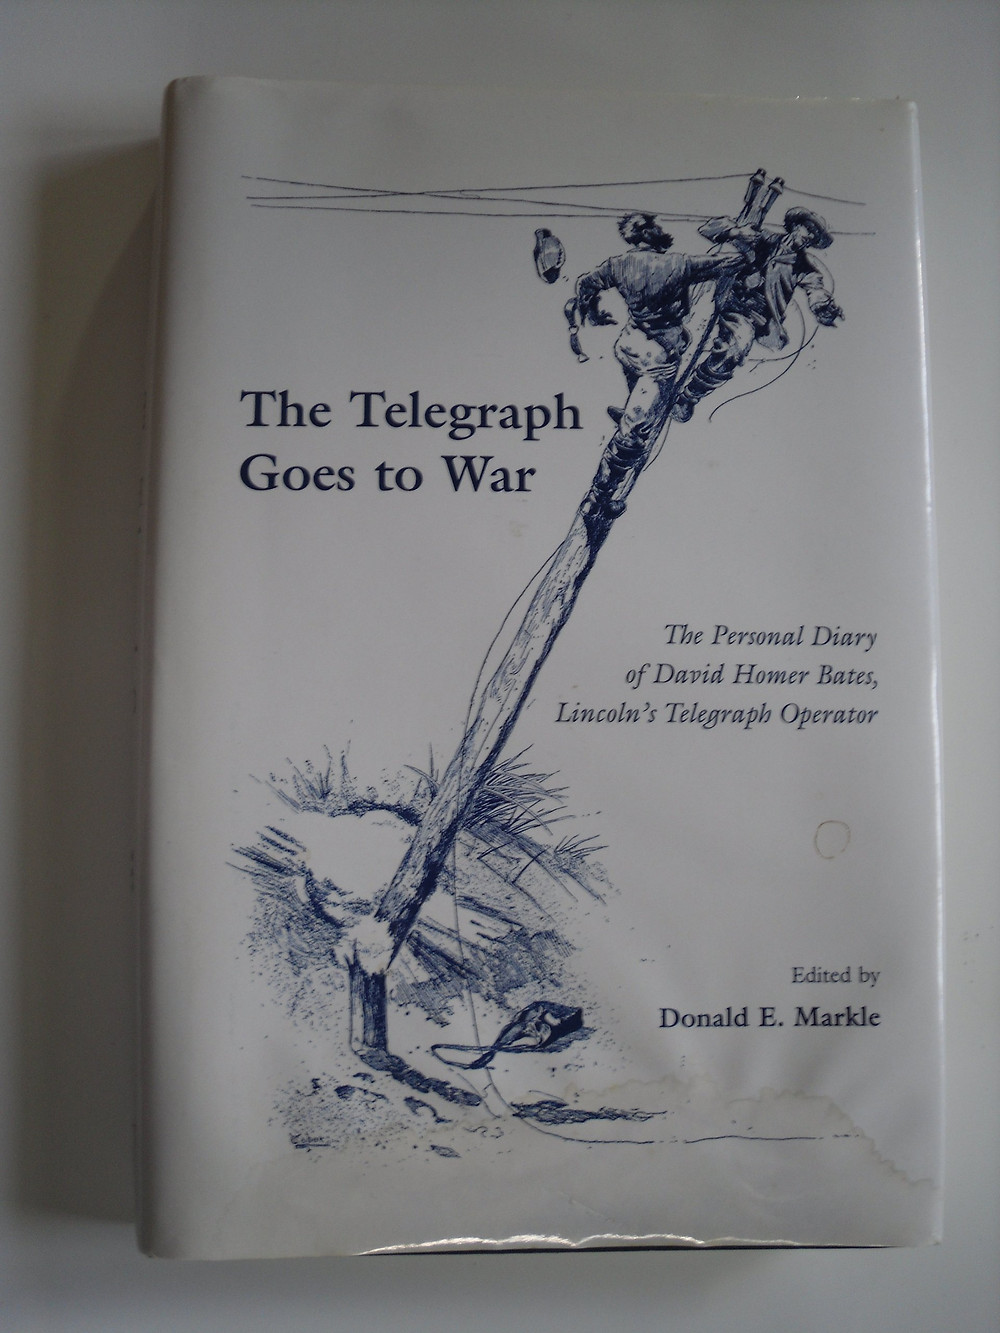 American Civil War Round Table UK / Book Review /  The Telegraph Goes to War - The Personal Diary of David Homer Bates, Lincoln's Telegraph Operator / Donald E Markle